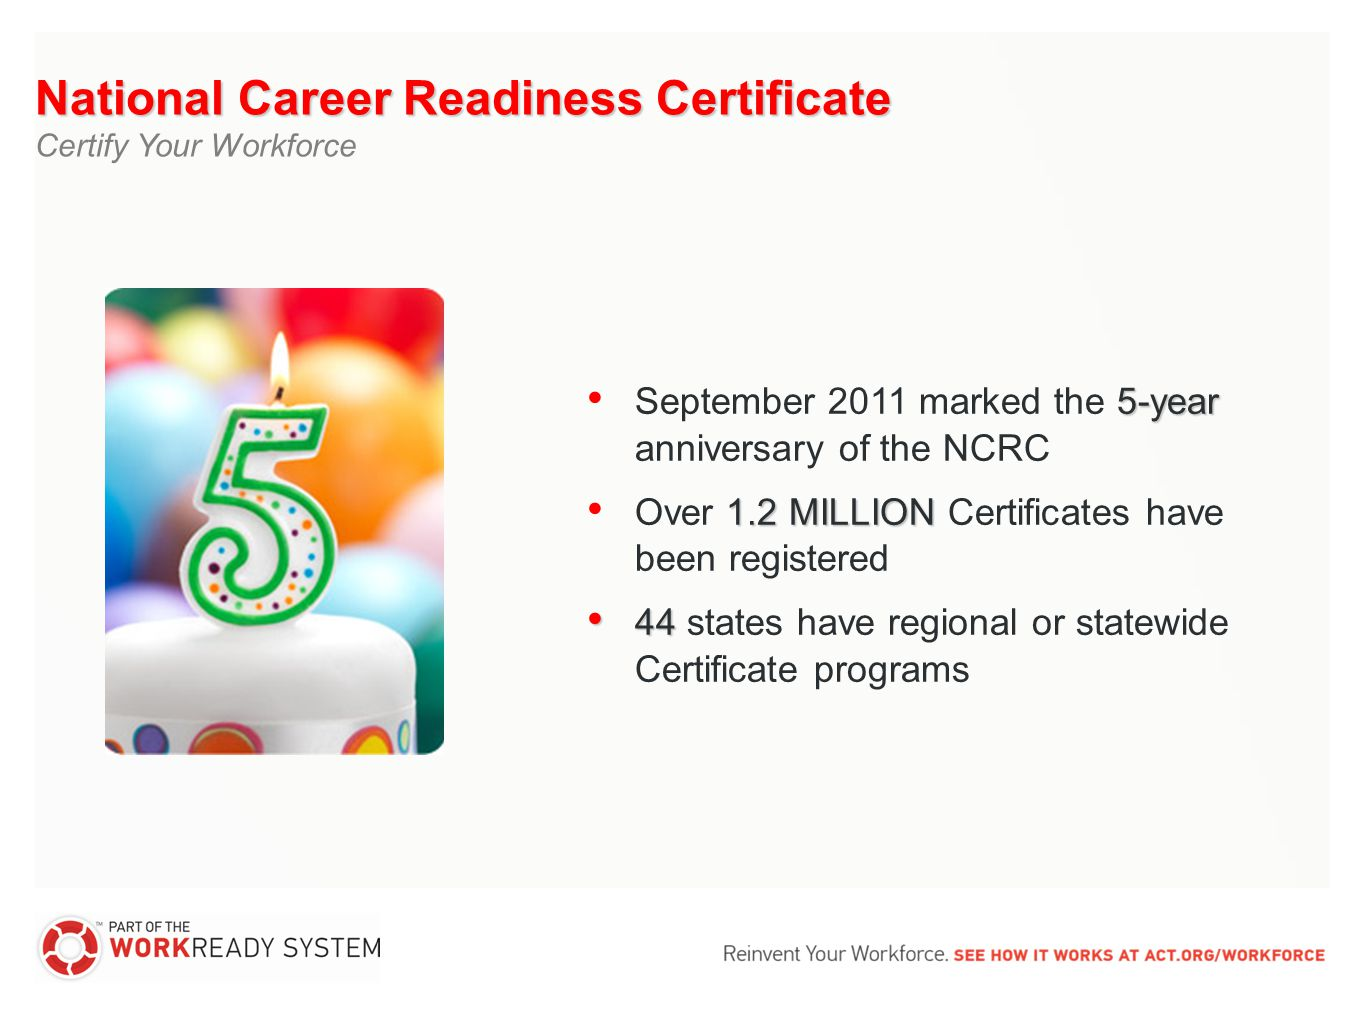 The national career readiness certificate issued by act is a 29 national career readiness certificate certify your workforce 5 year september 2011 marked the 5 year anniversary of the ncrc 12 million over 12 million xflitez Choice Image